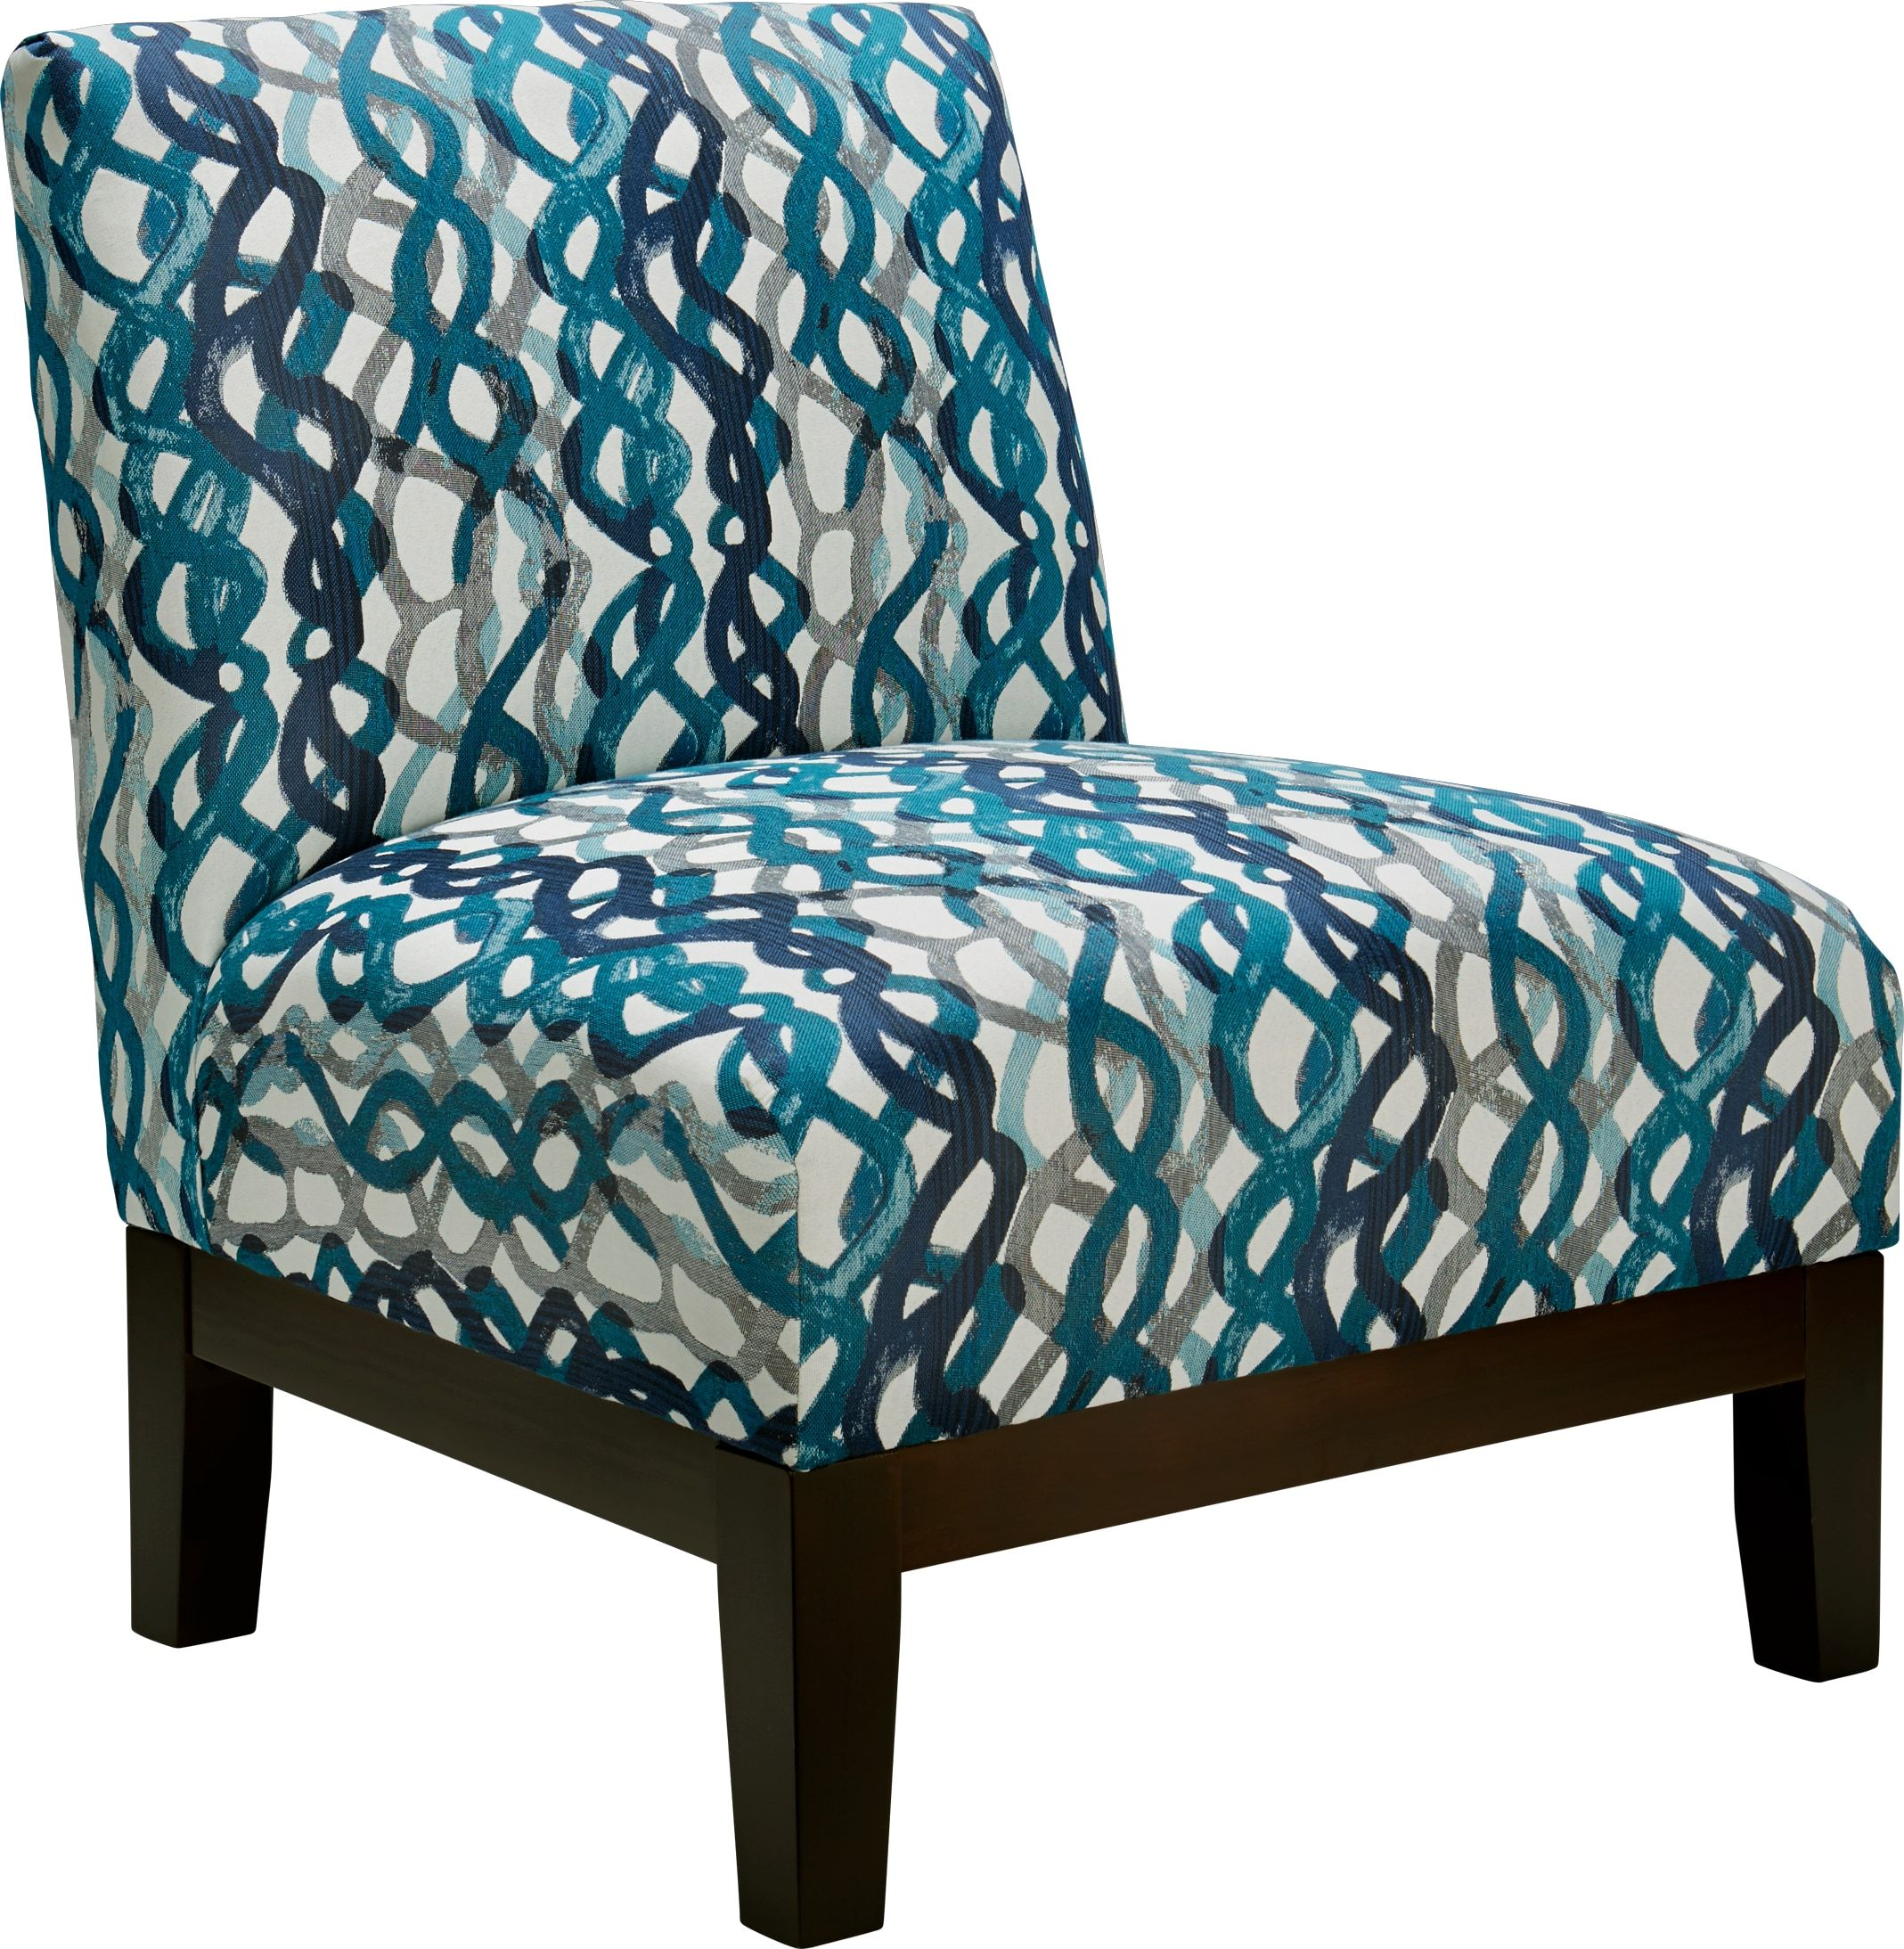 Basque turquoise accent chair 29999 30w x 305d x 35h